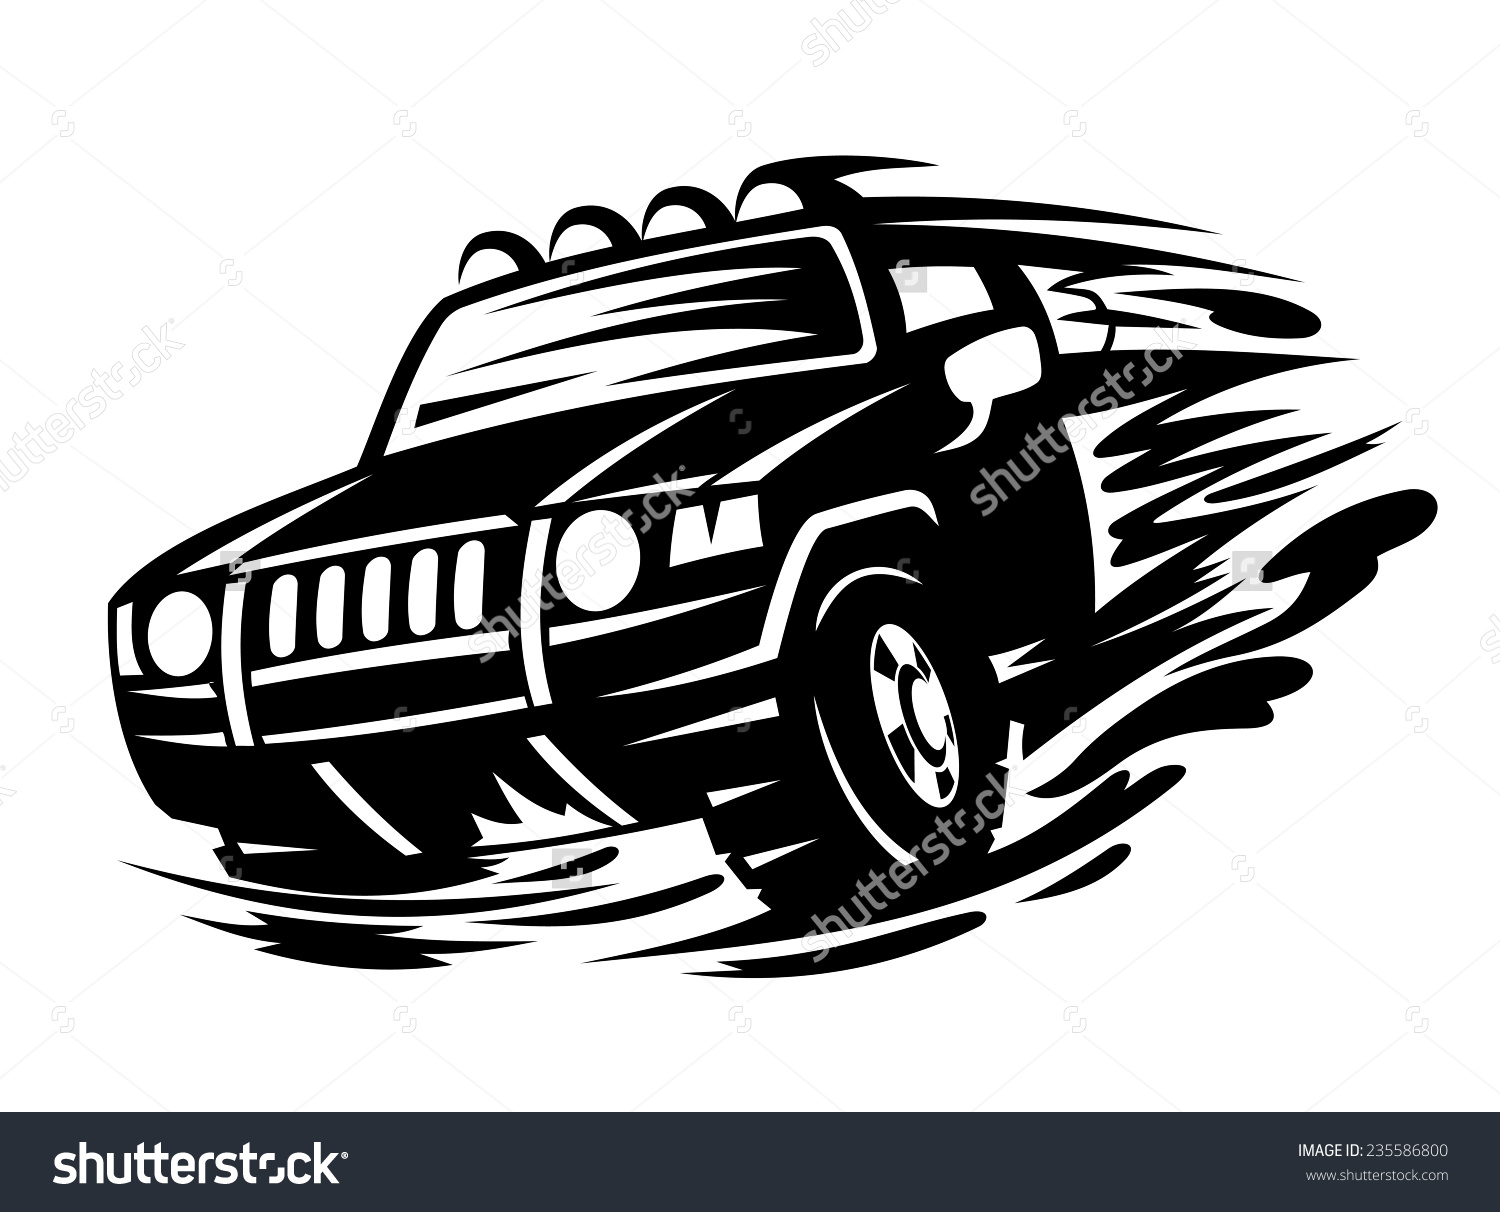 Offroad Vehicle Black Color Tattoo Design Stock Vector 235586800.